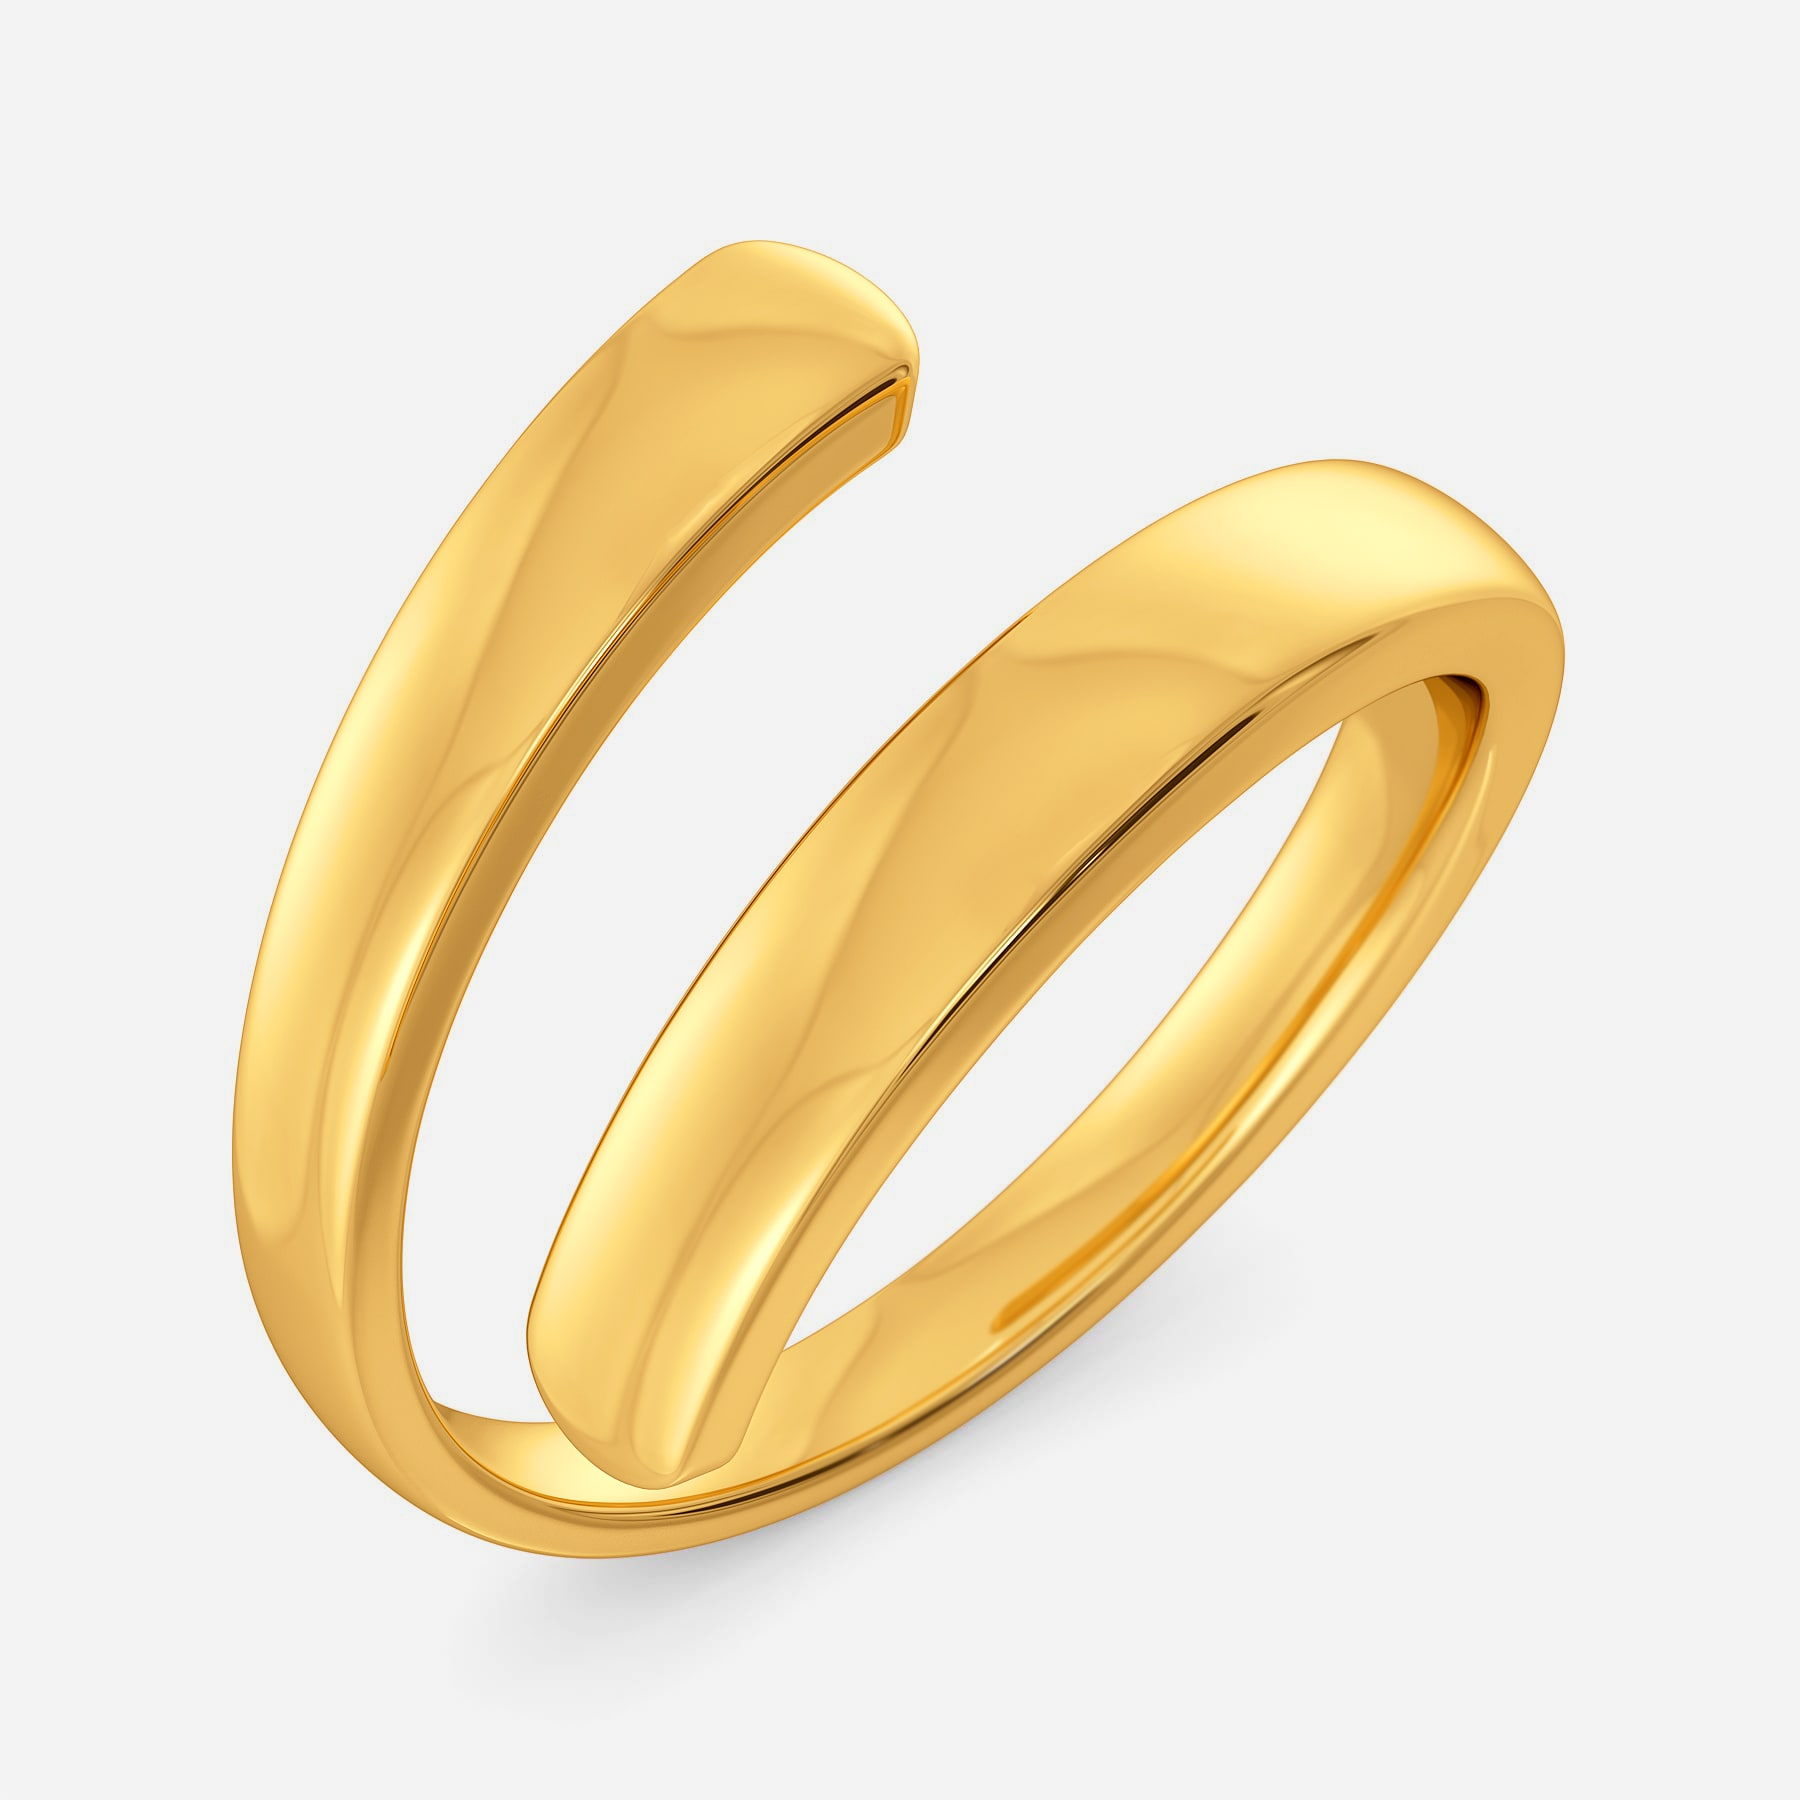 Gold Rings Online For Women From